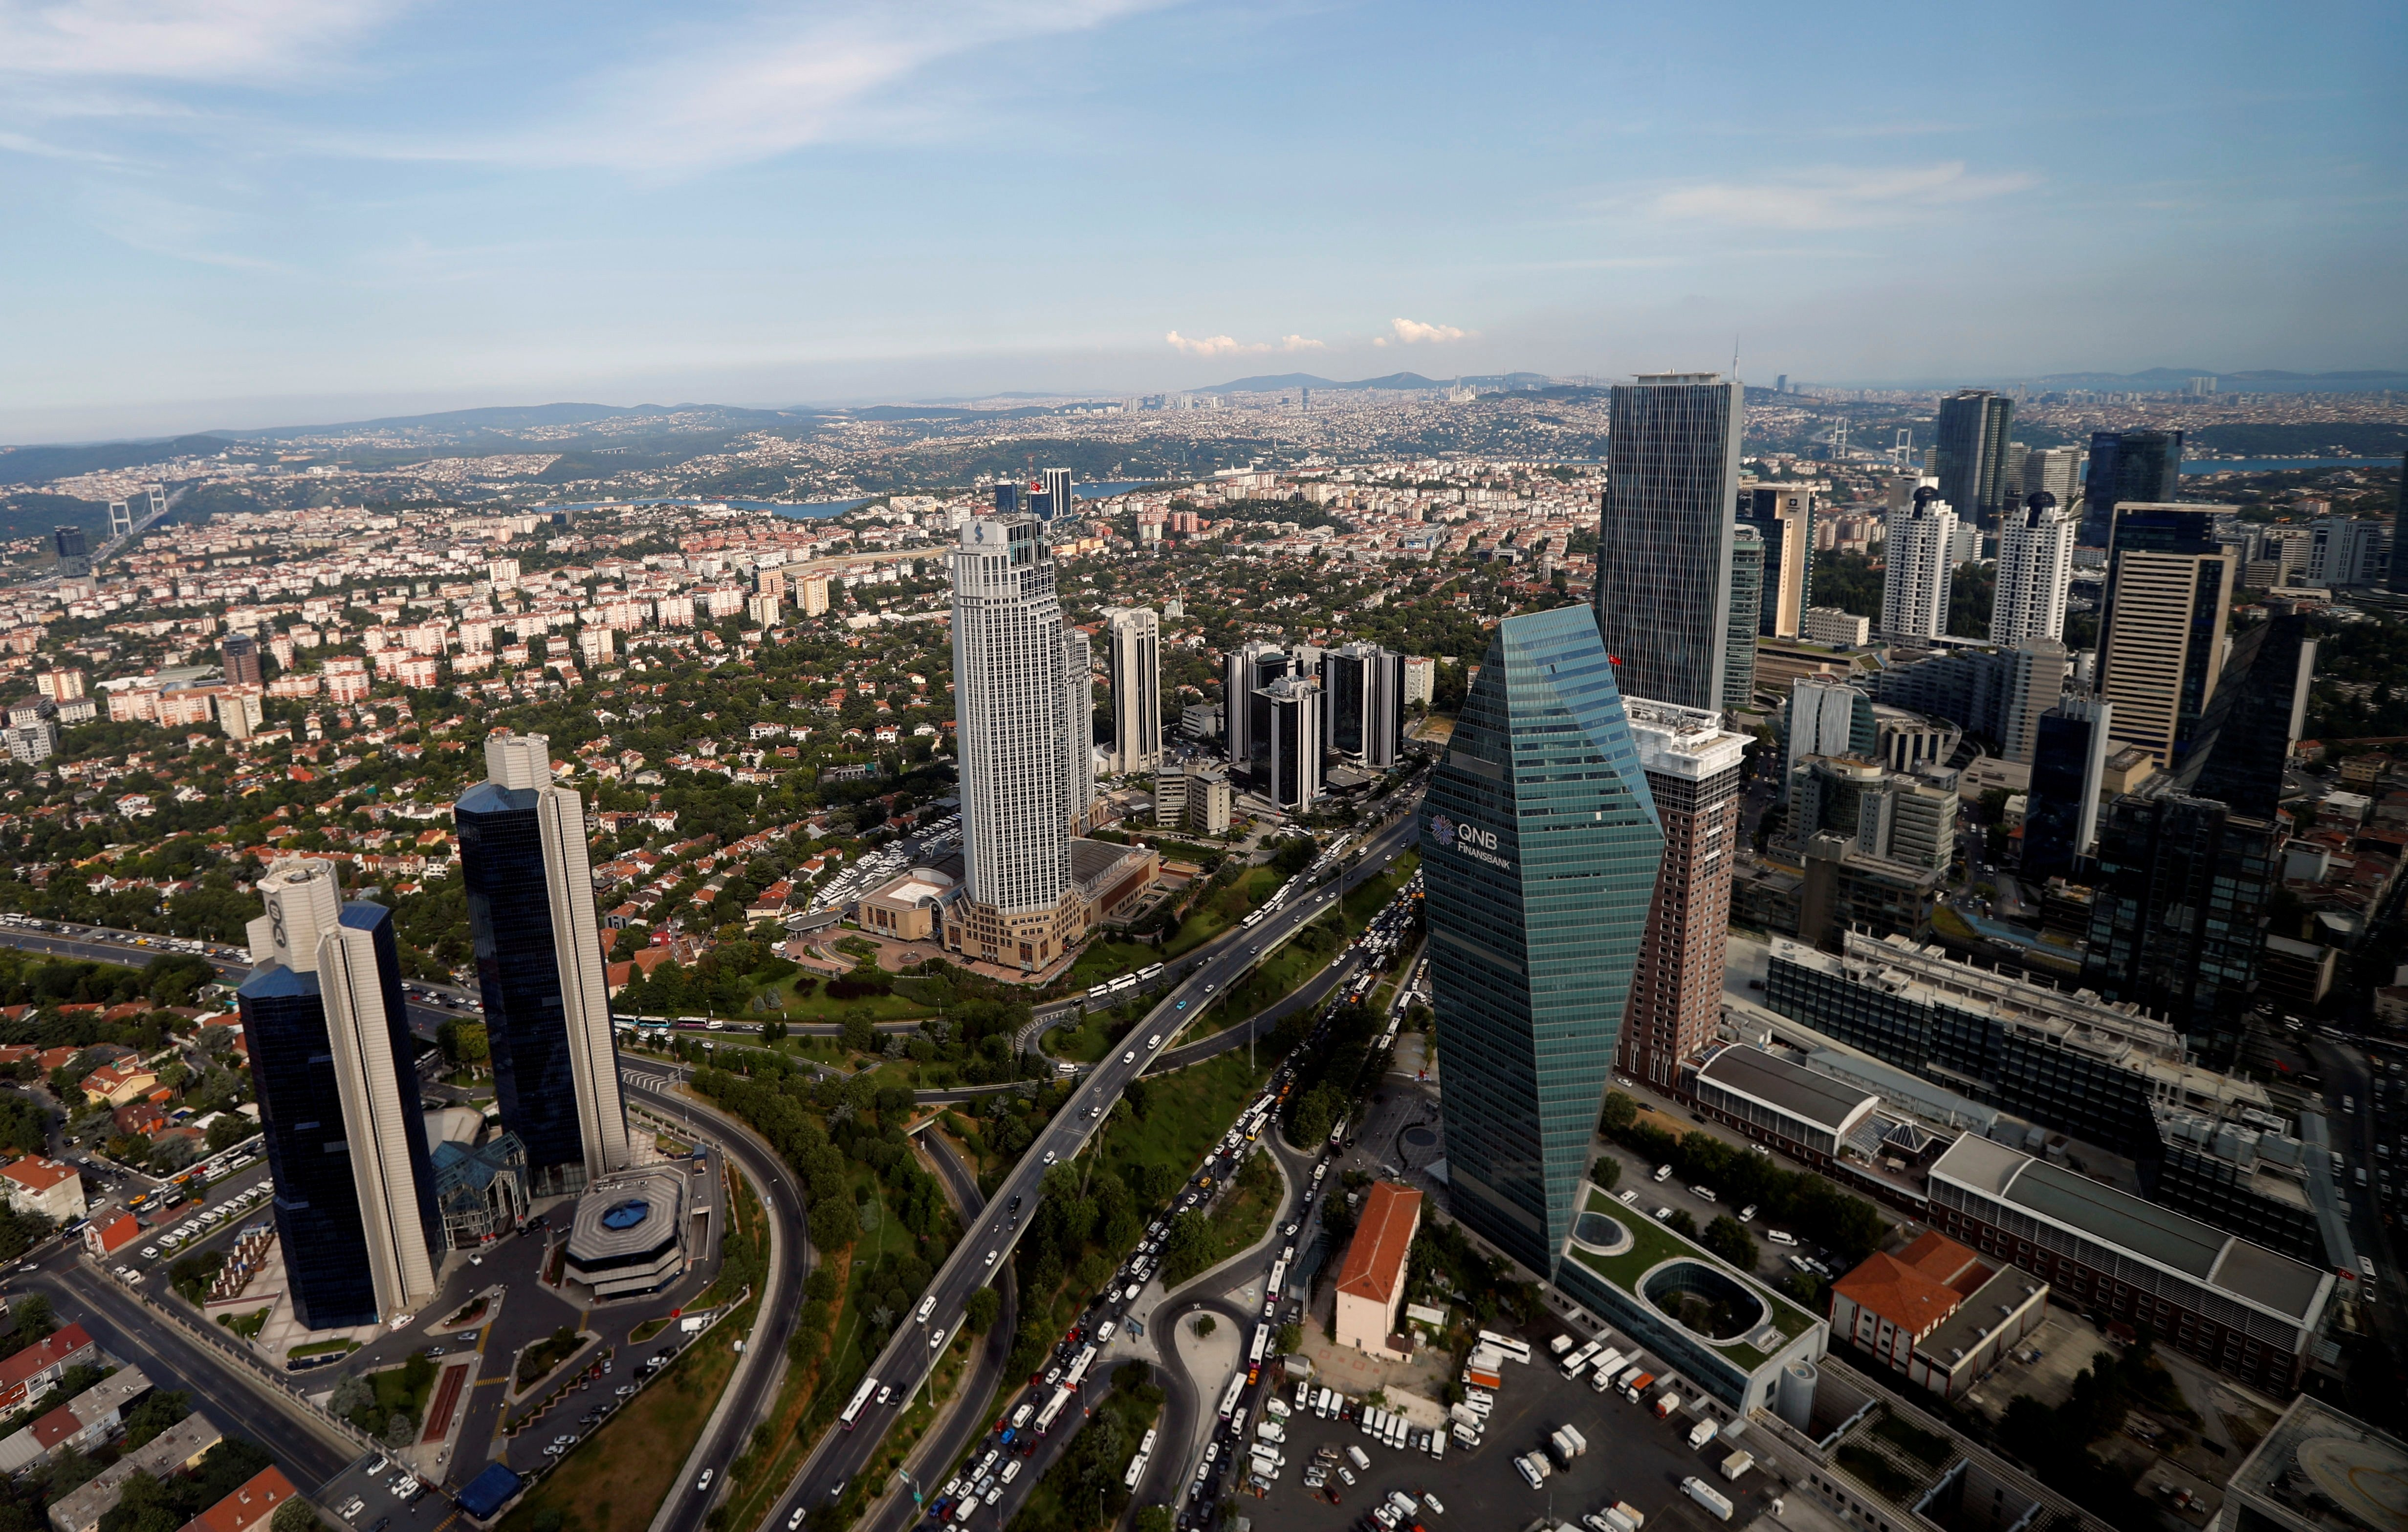 The business and financial district of Levent, comprised of banks' headquarters and popular shopping malls, in Istanbul, Turkey, July 9, 2019. (Reuters Photo)